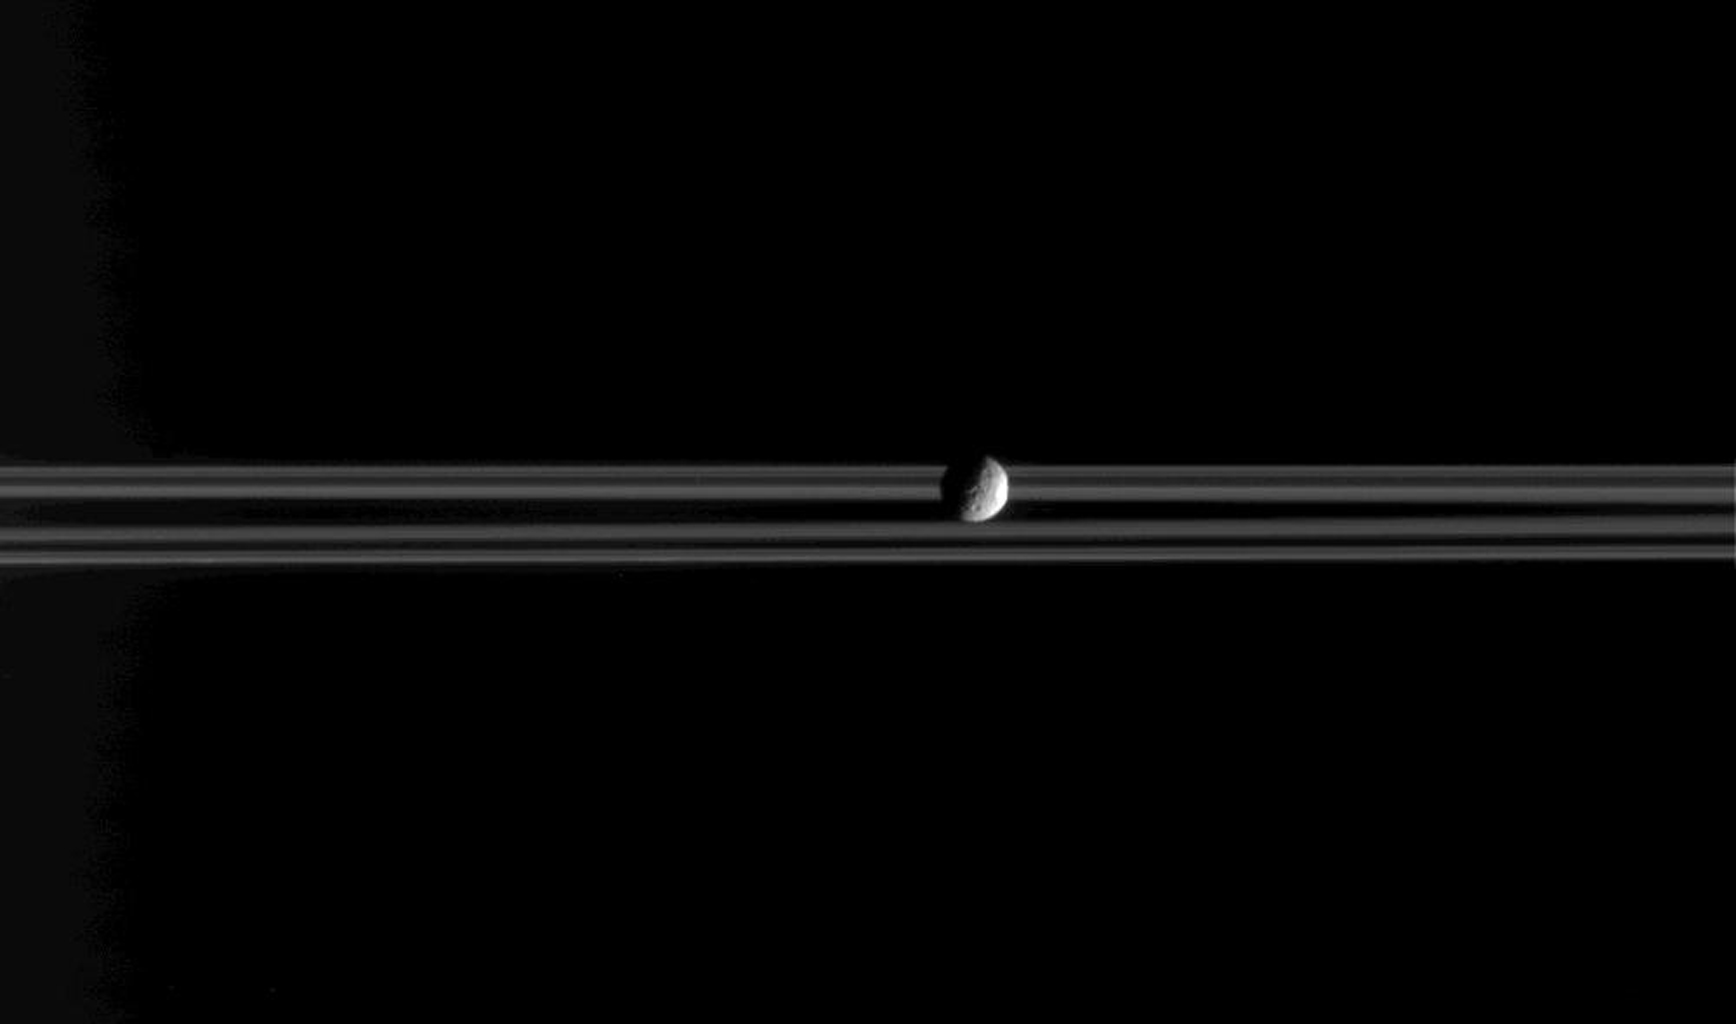 Mimas, a little moon of Saturn with a big crater, is the star of this image, a frame from a movie consisting of 37 individual frames taken over 20 minutes, while NASA's Cassini spacecraft remained sharply pointed at the icy worldlet.